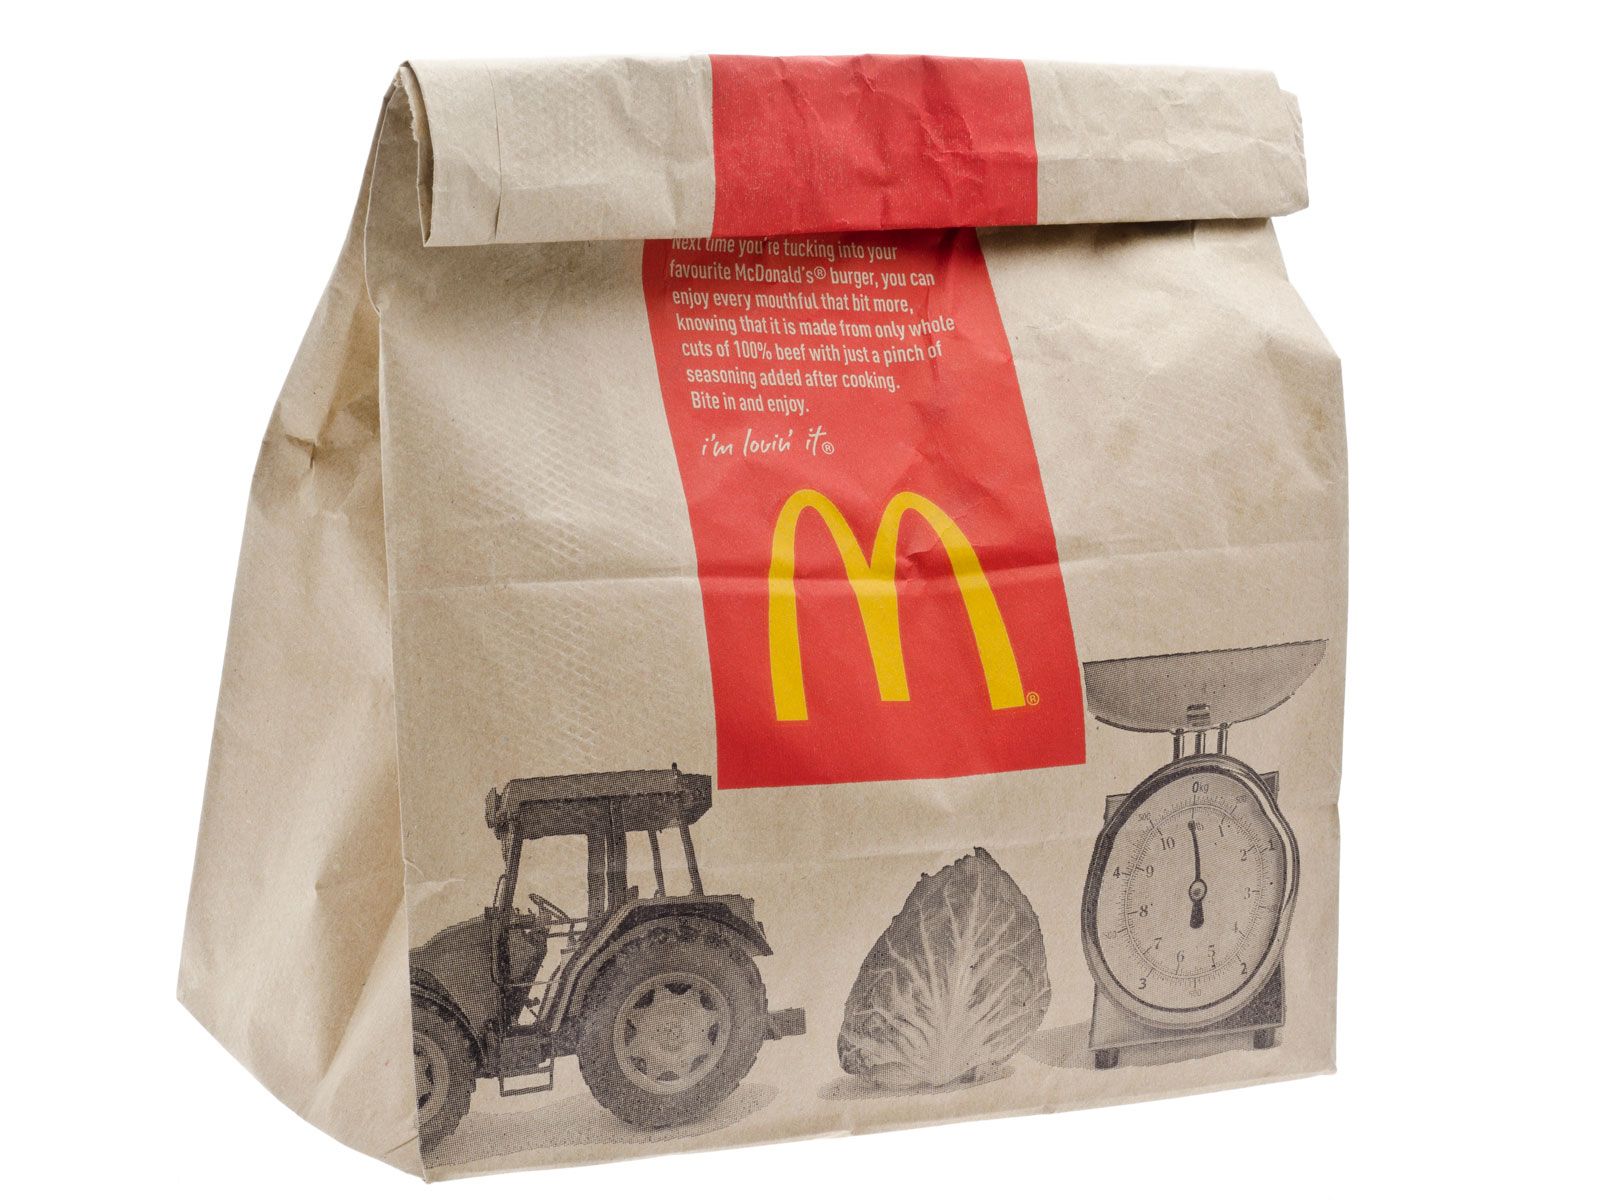 McDonald's Adds Grubhub, Now Works with America's Three Largest Delivery Services